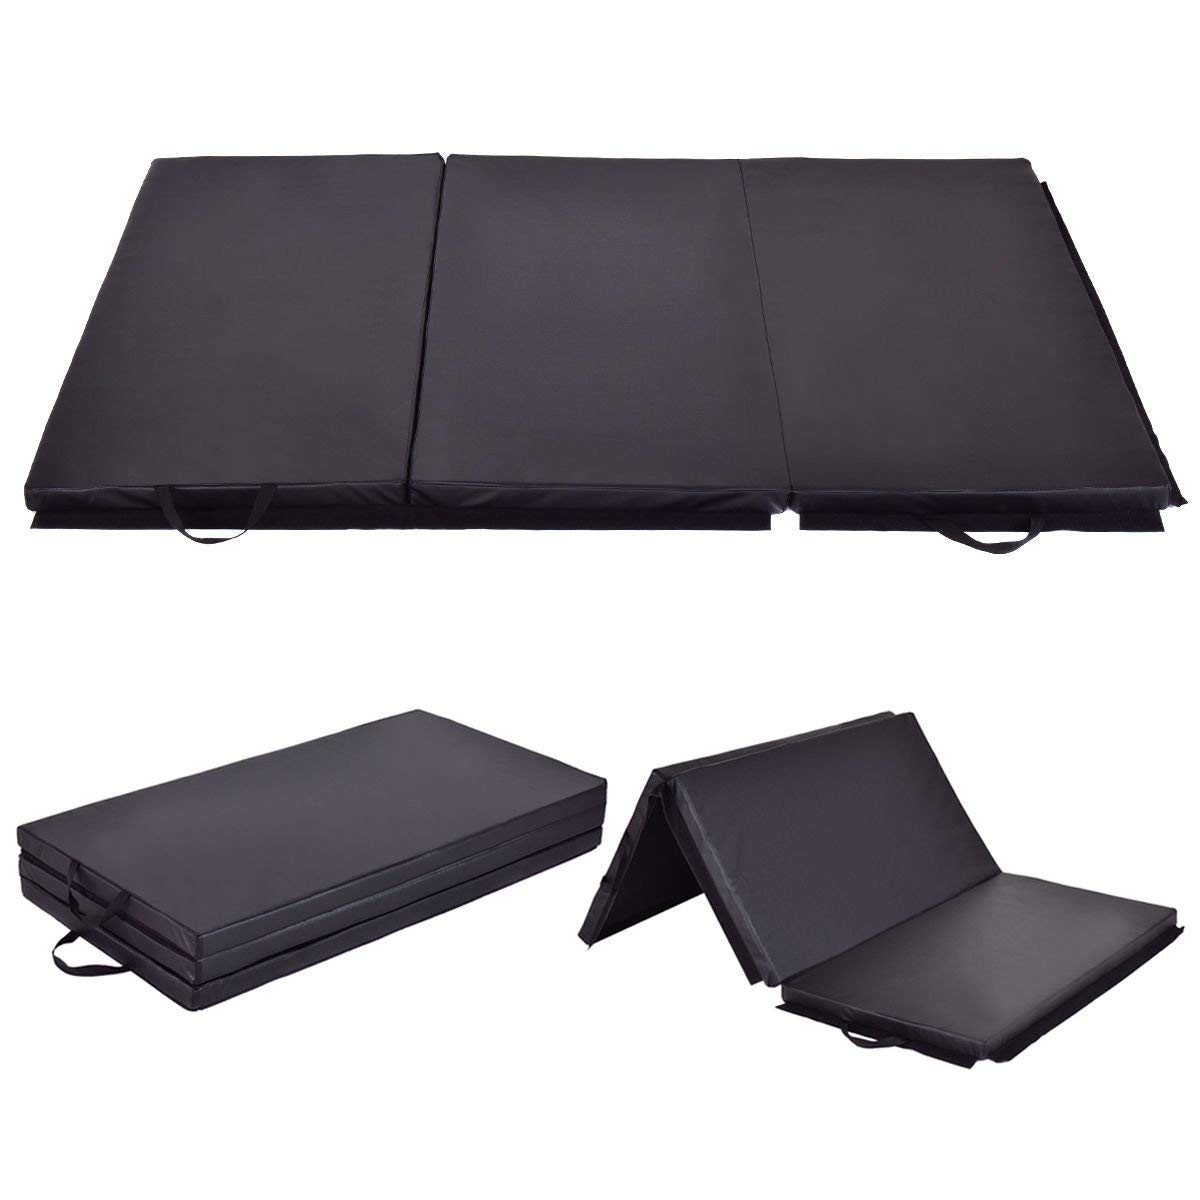 Giantex 6' x 4' Tri-Fold Gymnastics Mat Thick Folding Panel for Gym Fitness Exercise (Black) by Giantex (Image #1)